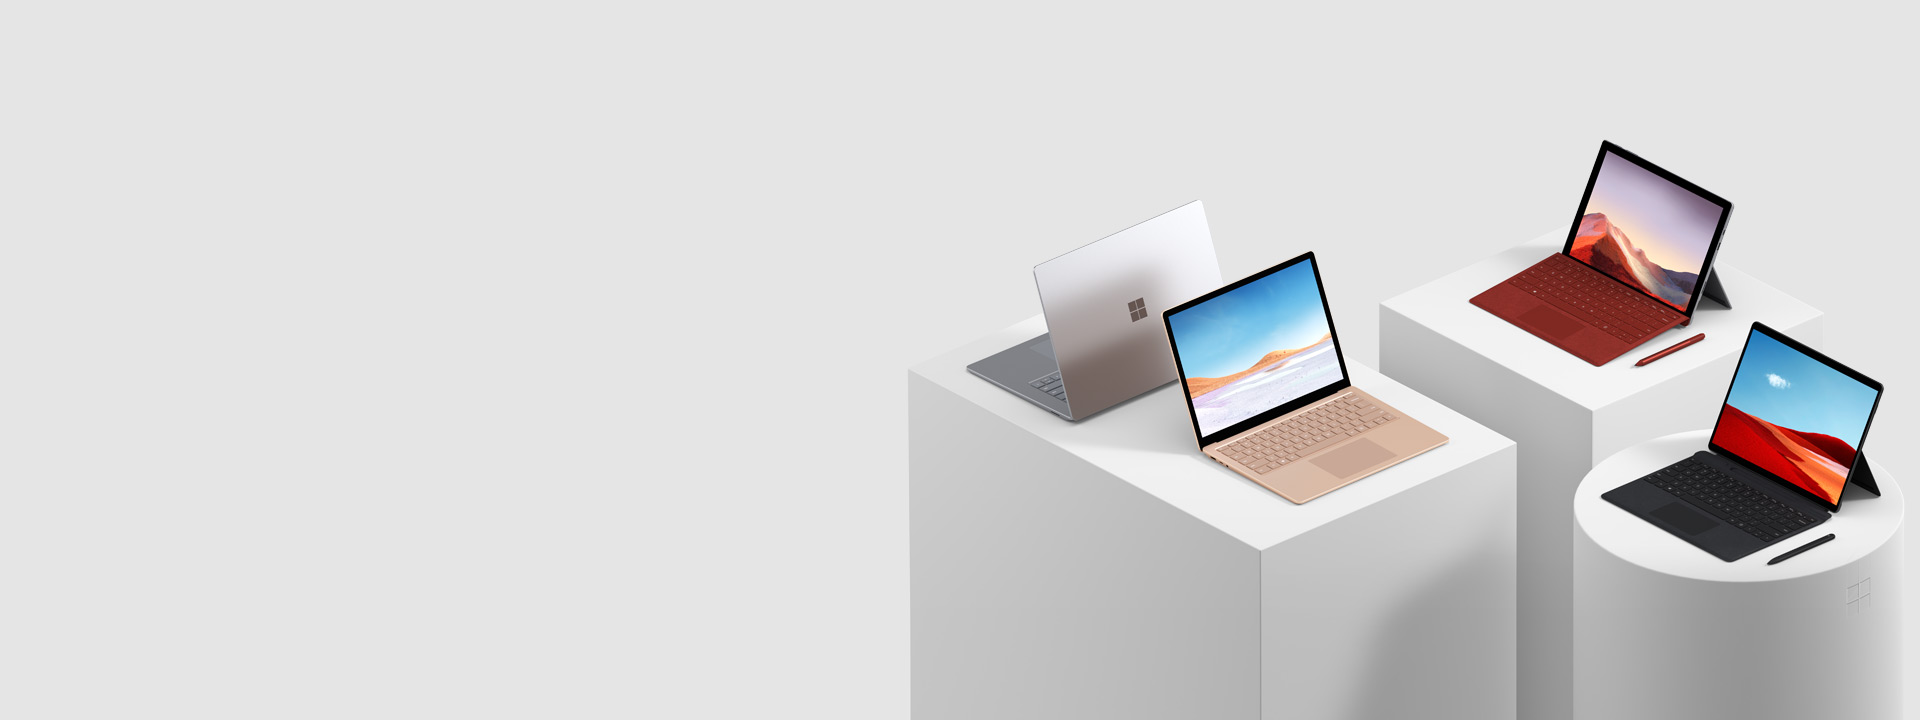 數台 Surface 電腦,其中包括 Surface Pro 7、Surface Pro X、Surface Book 2、Surface Studio 2 和 Surface Go